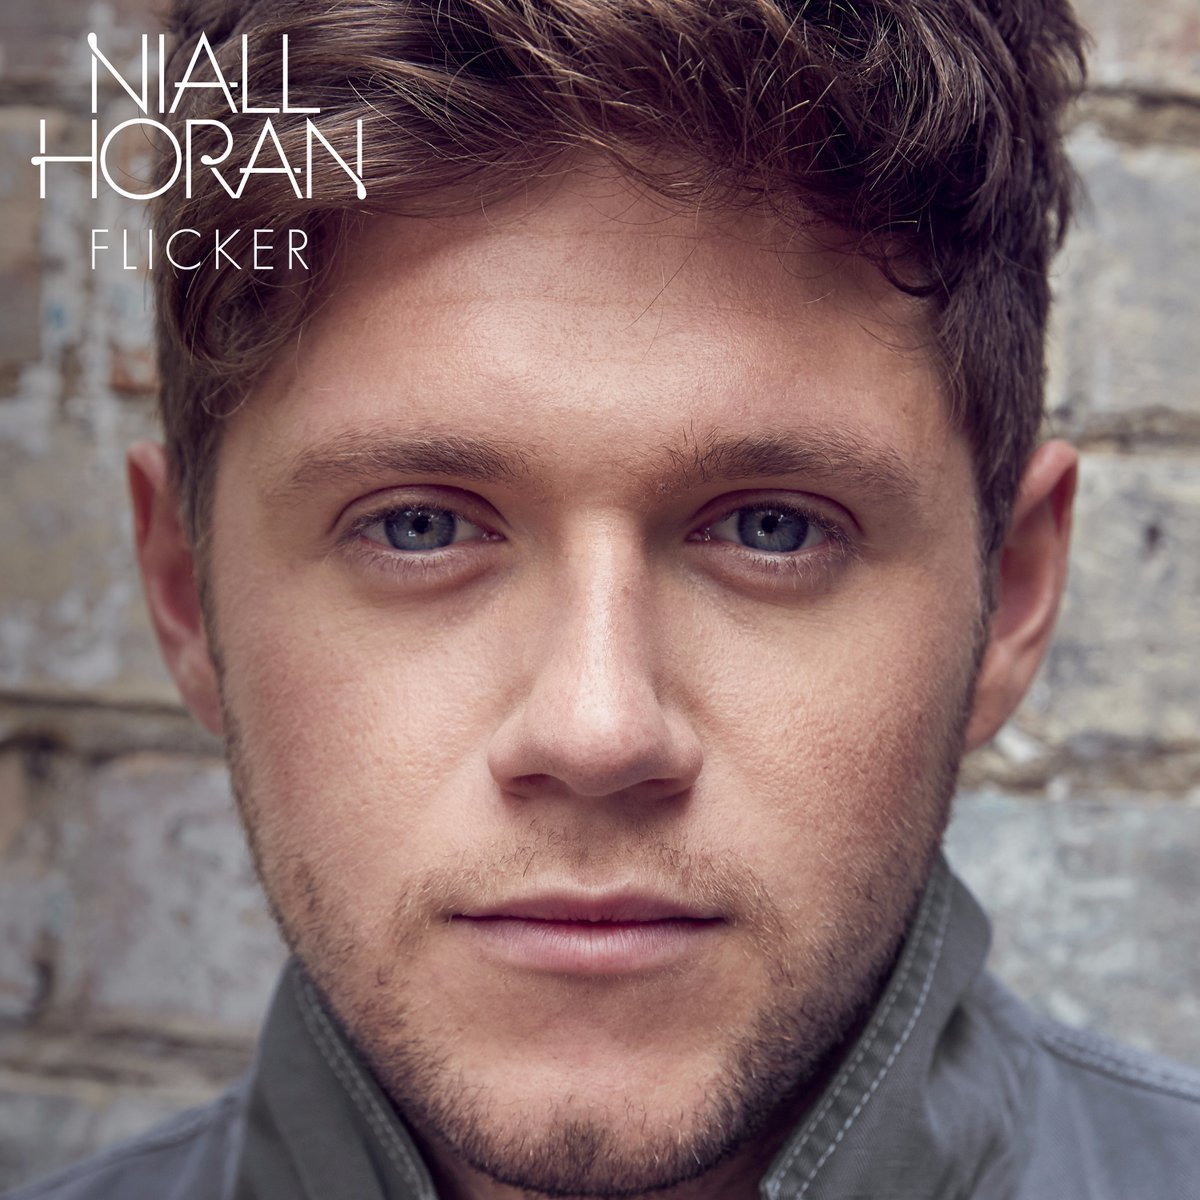 niall horan, flicker, and niall image